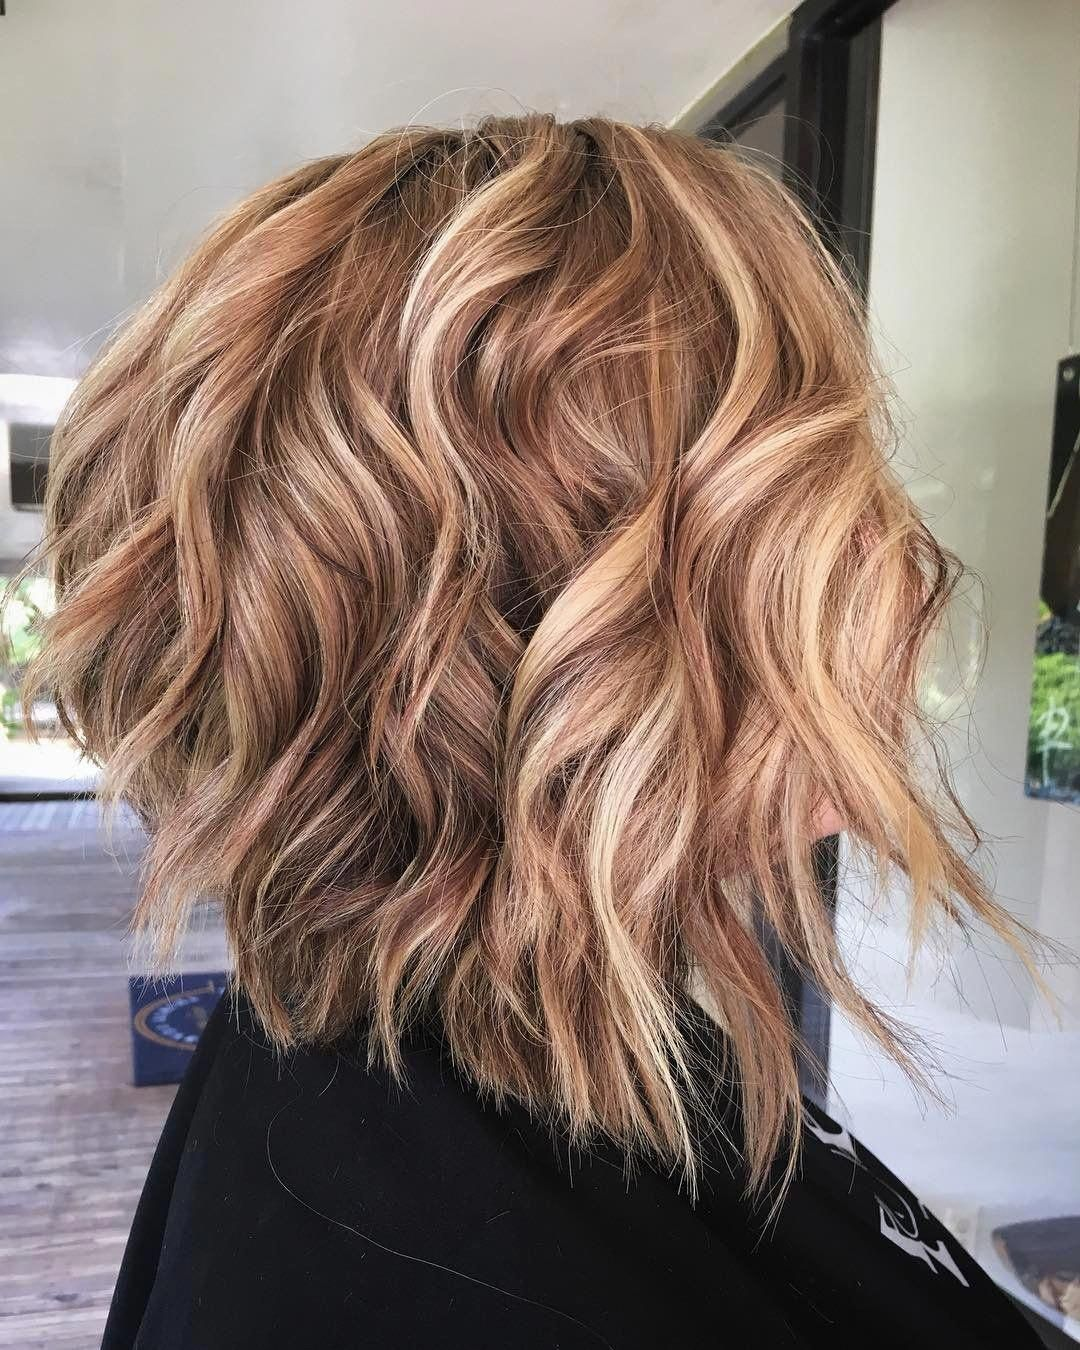 9 Fall Hair Color Trends For Blondes You Ll Be Seeing Everywhere